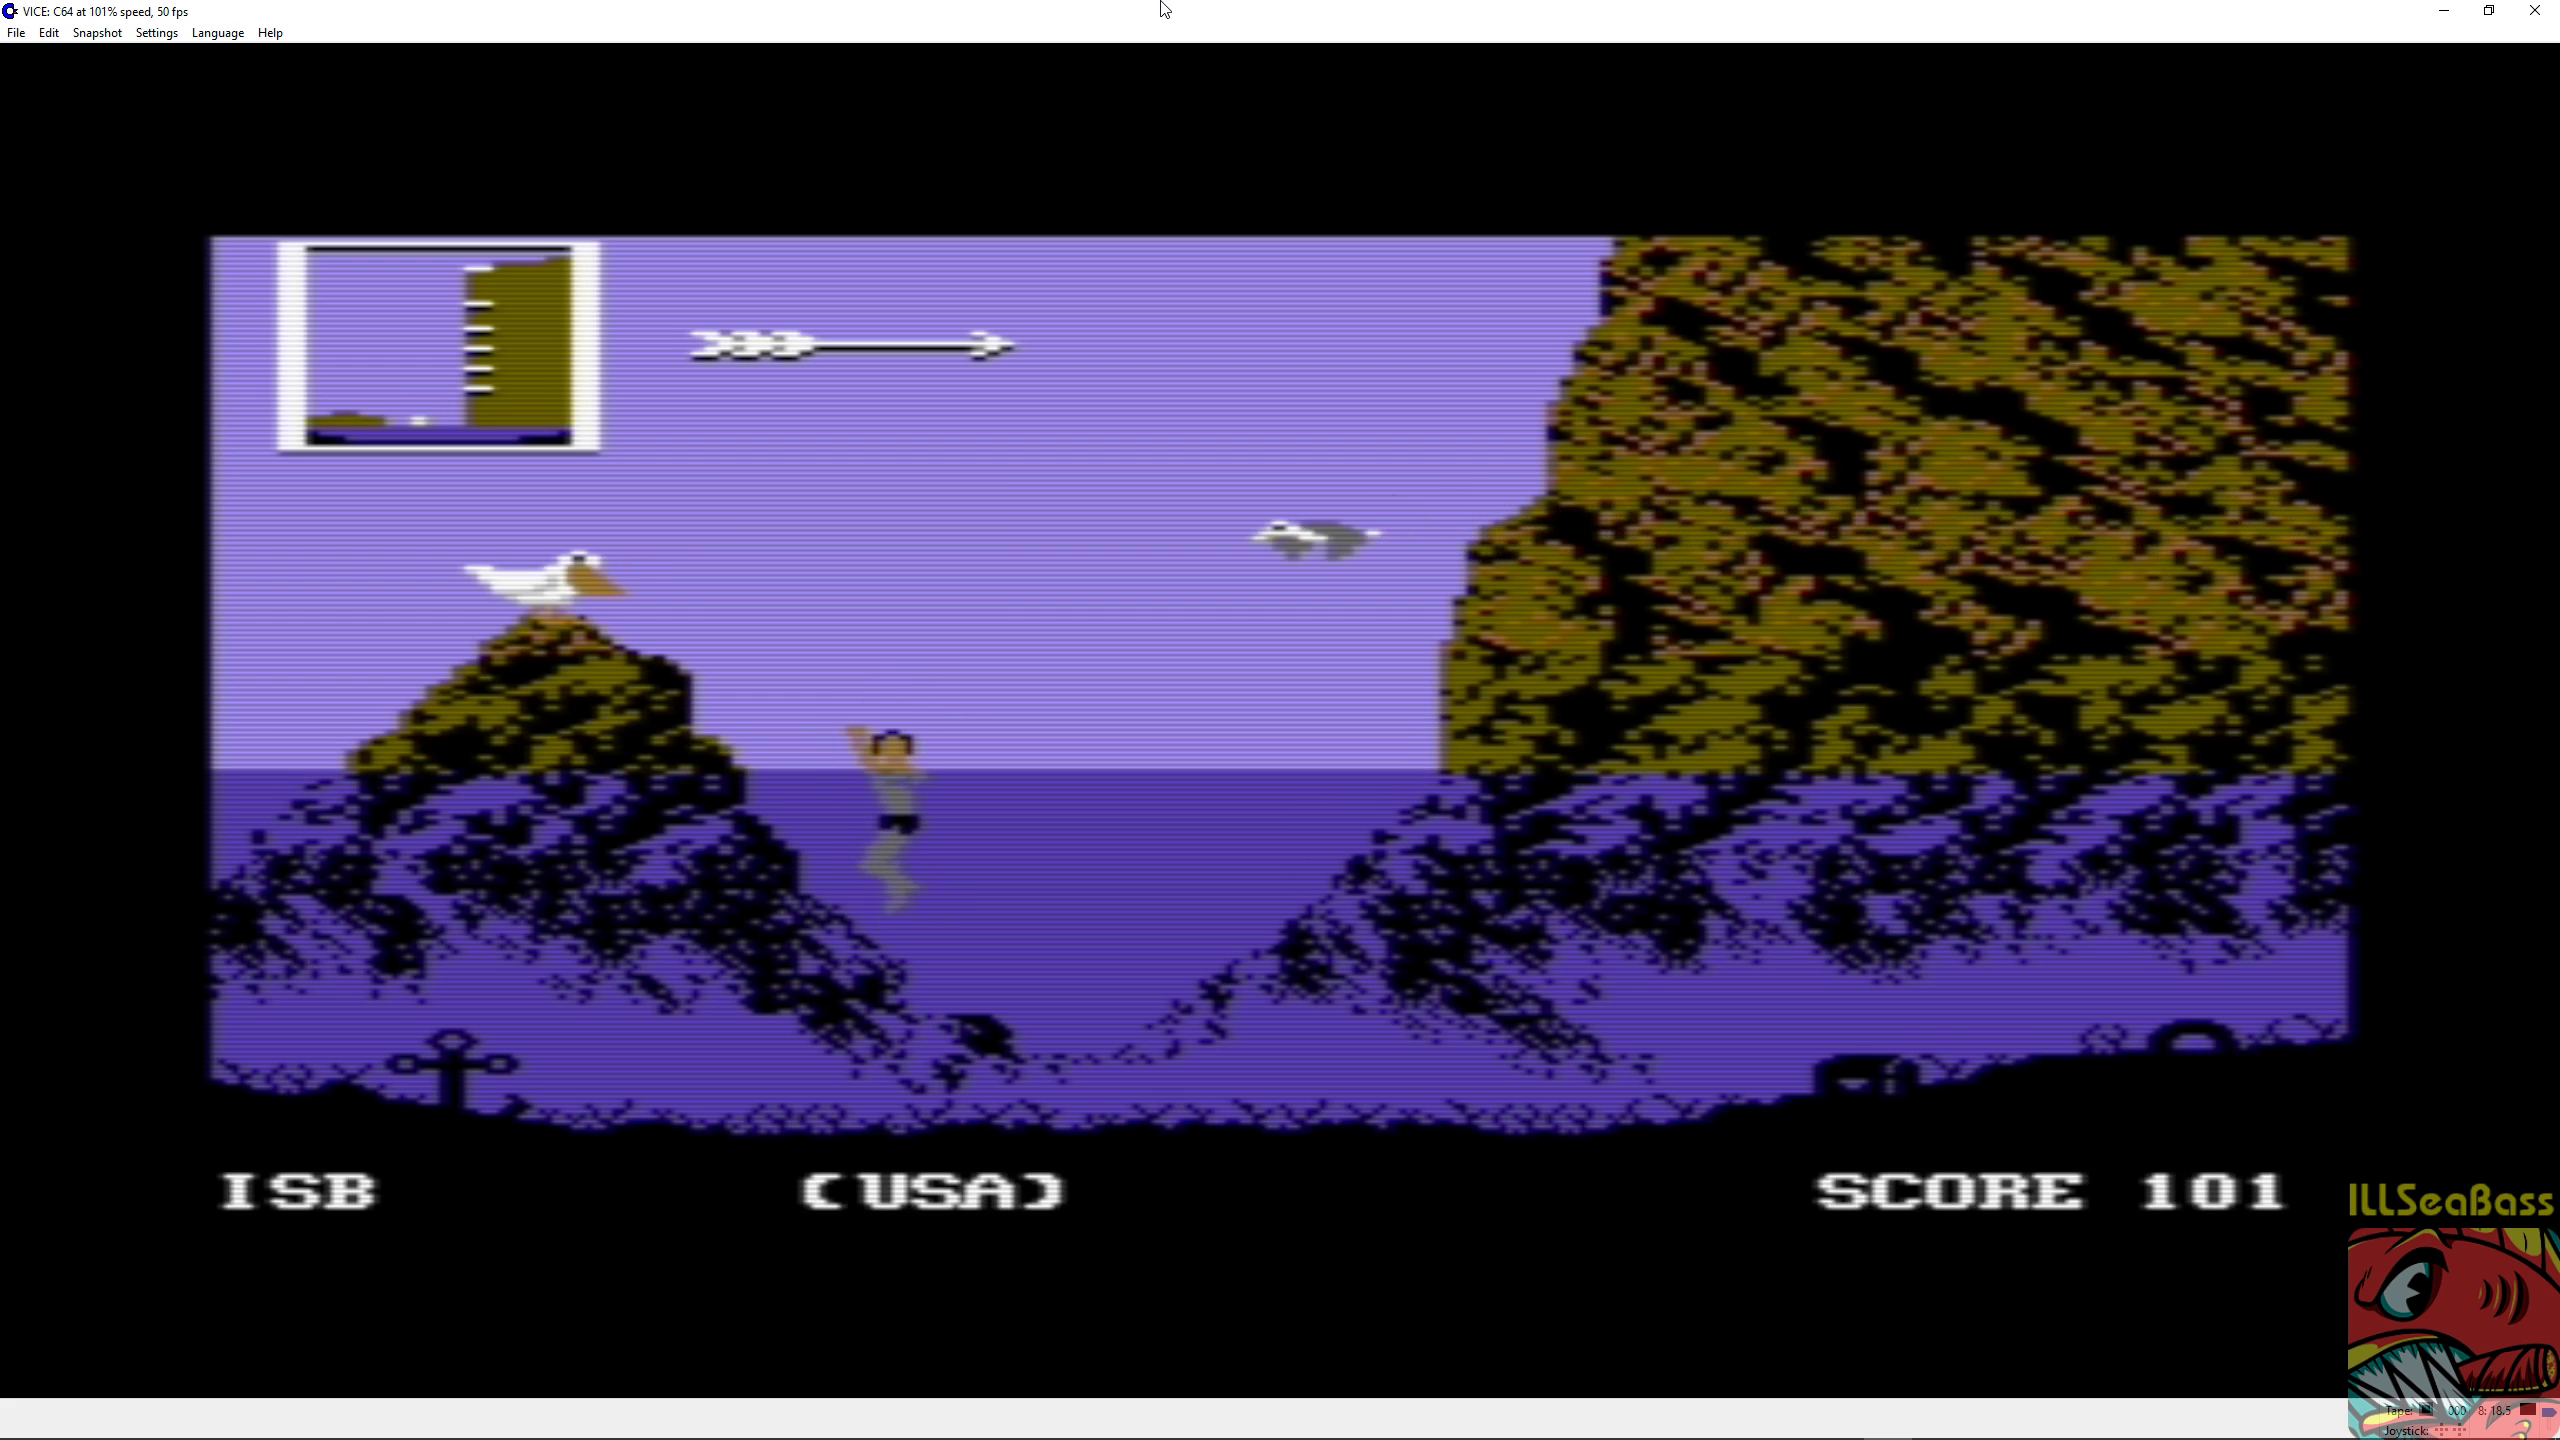 ILLSeaBass: World Games [Cliff Diving] (Commodore 64 Emulated) 101 points on 2018-08-27 15:25:04